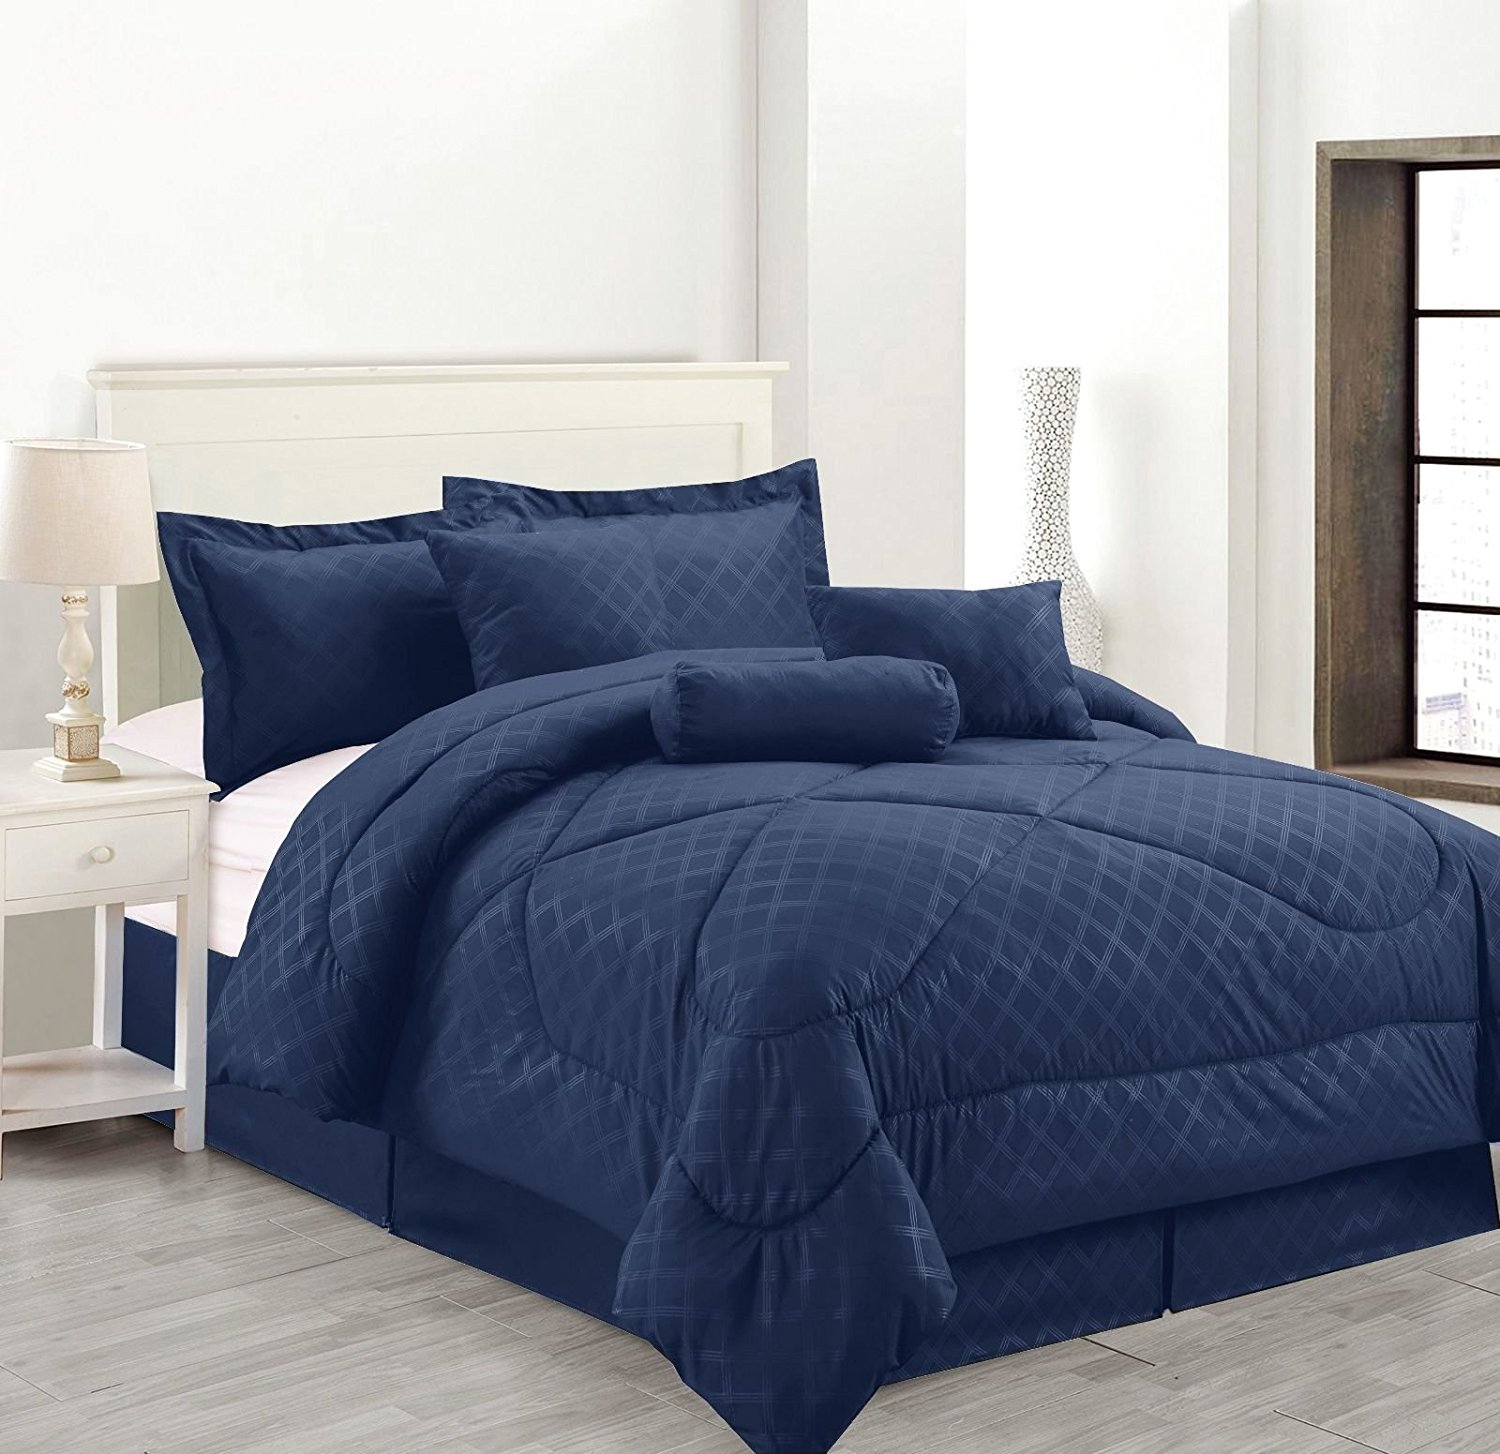 luxury hotel full size 8 piece embossed solid over sized comforter set bed in a bag navy blue walmart com